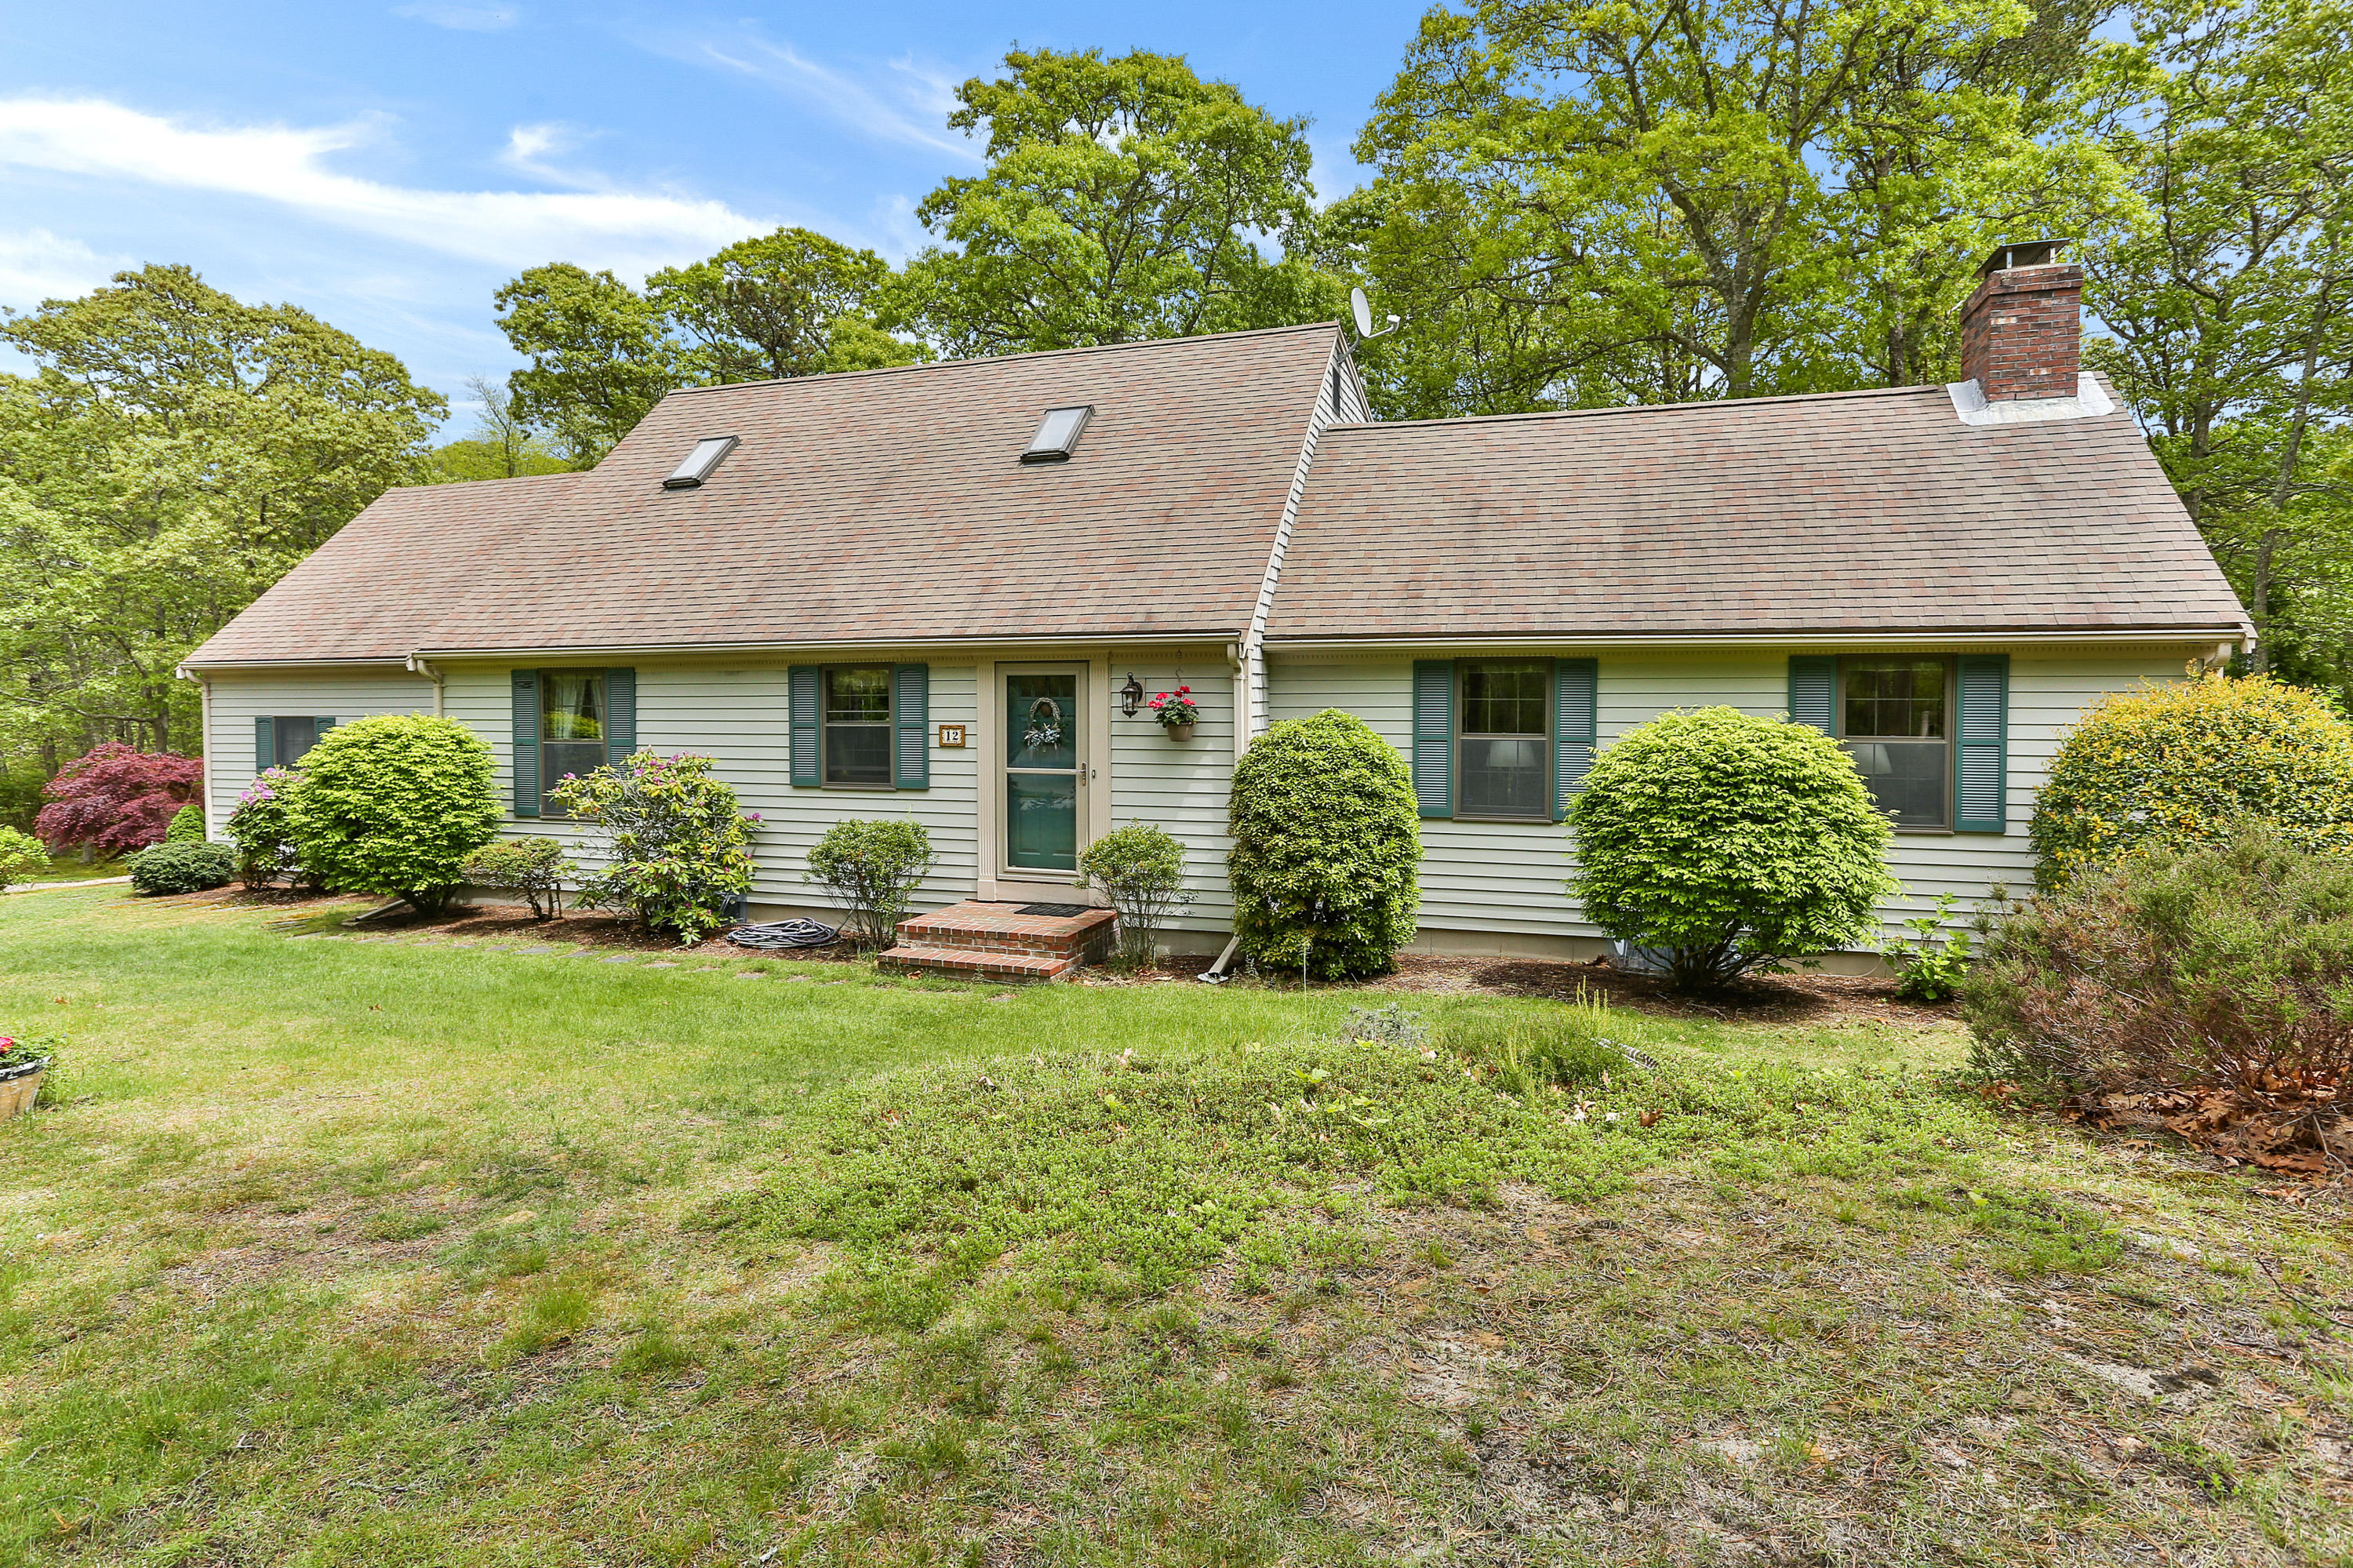 12  Skaket Way, Brewster MA, 02631